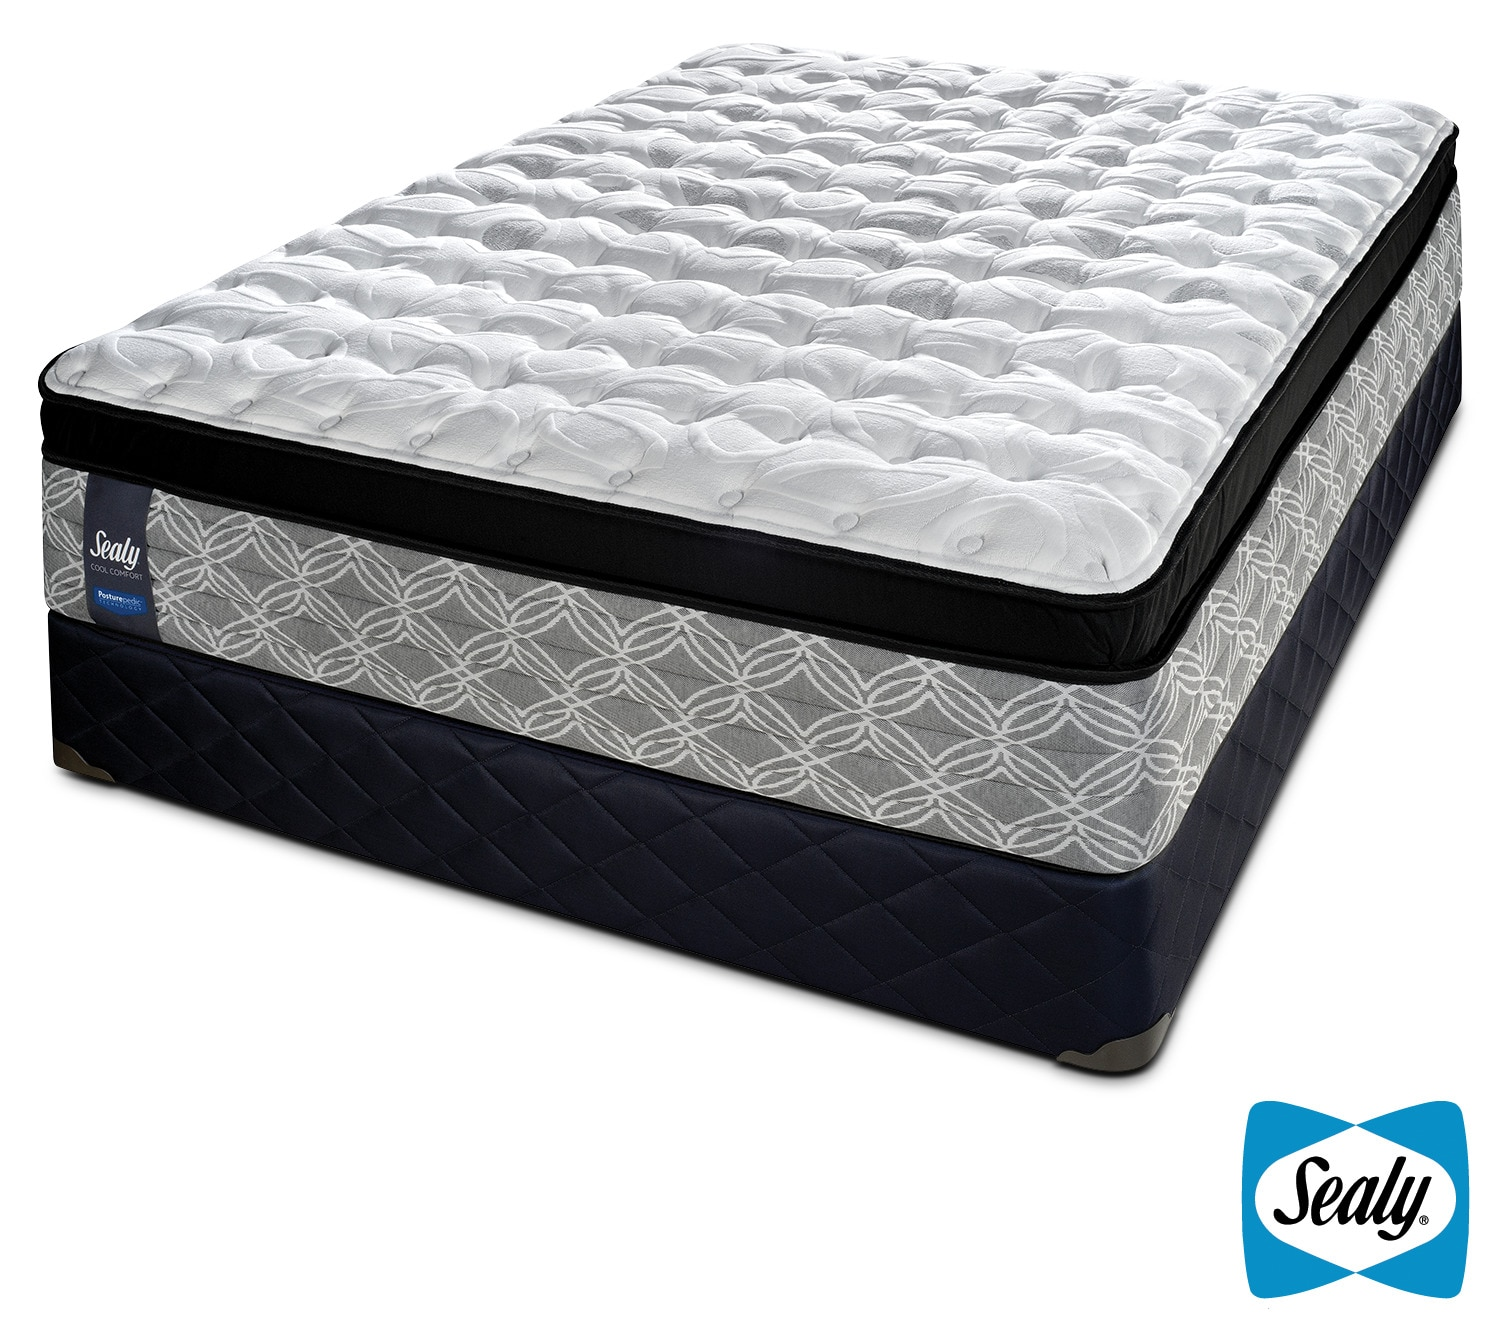 Queen mattress set twin mattress and foundation sets legend mattress hhgregg mattress Queen mattress cheap